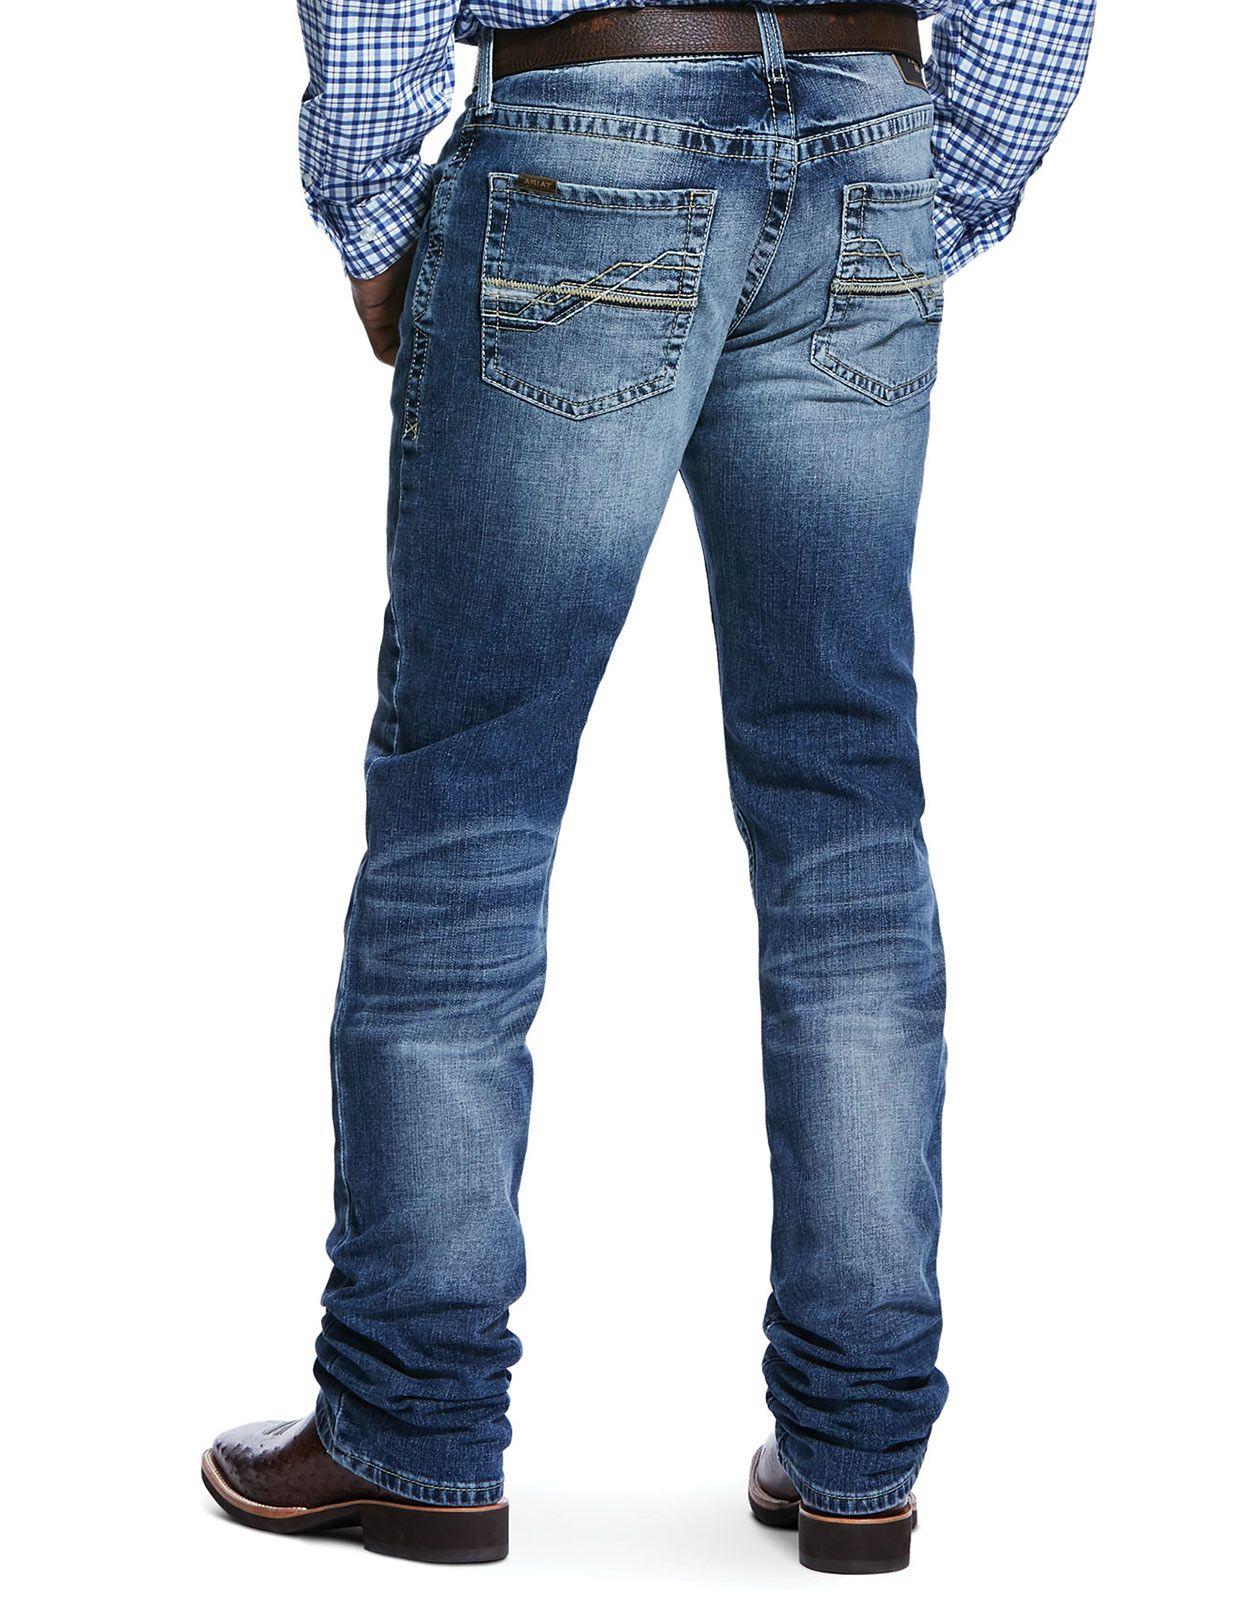 Ariat Men's M4 Stretch Low Rise Relaxed Fit Stackable Straight Leg Jeans - Dakota